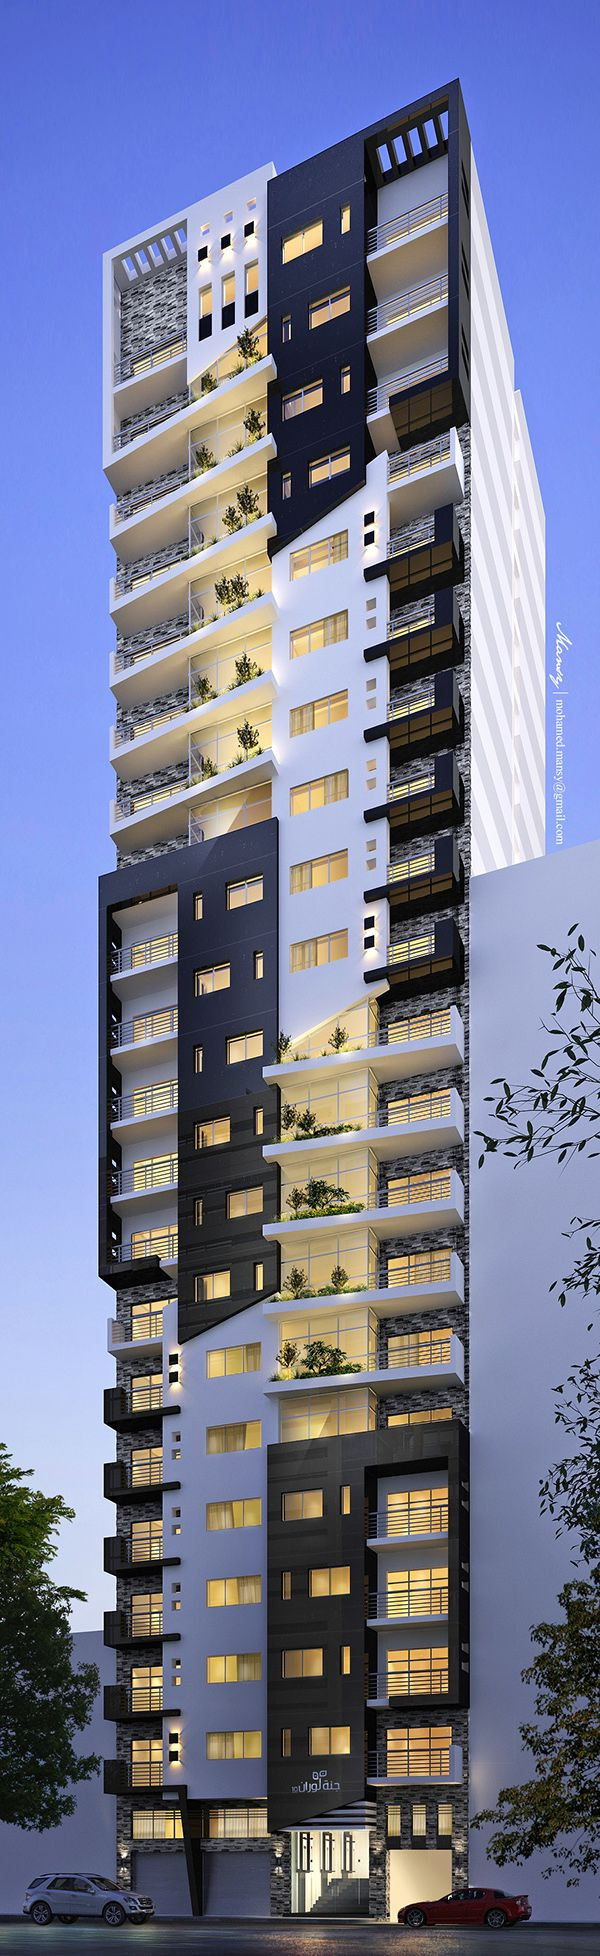 Loran Highrise Residential Apartment Building on Behance LUXURY